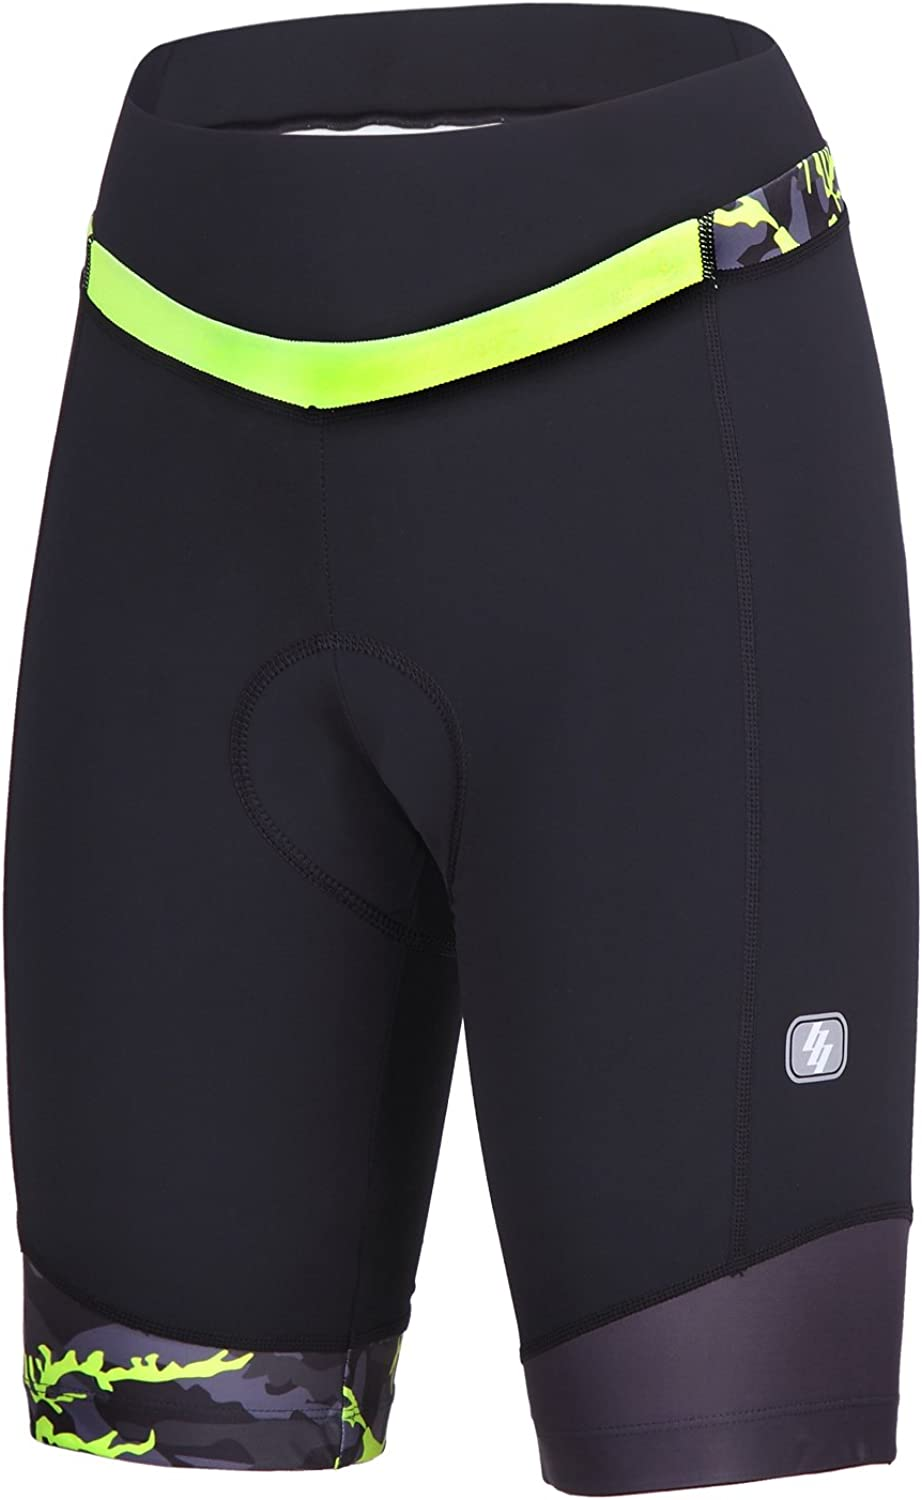 New Year New You Womens Bike Shorts for Cycling with 3D Padded Pink Ride Women Cycling Shorts NOOYME